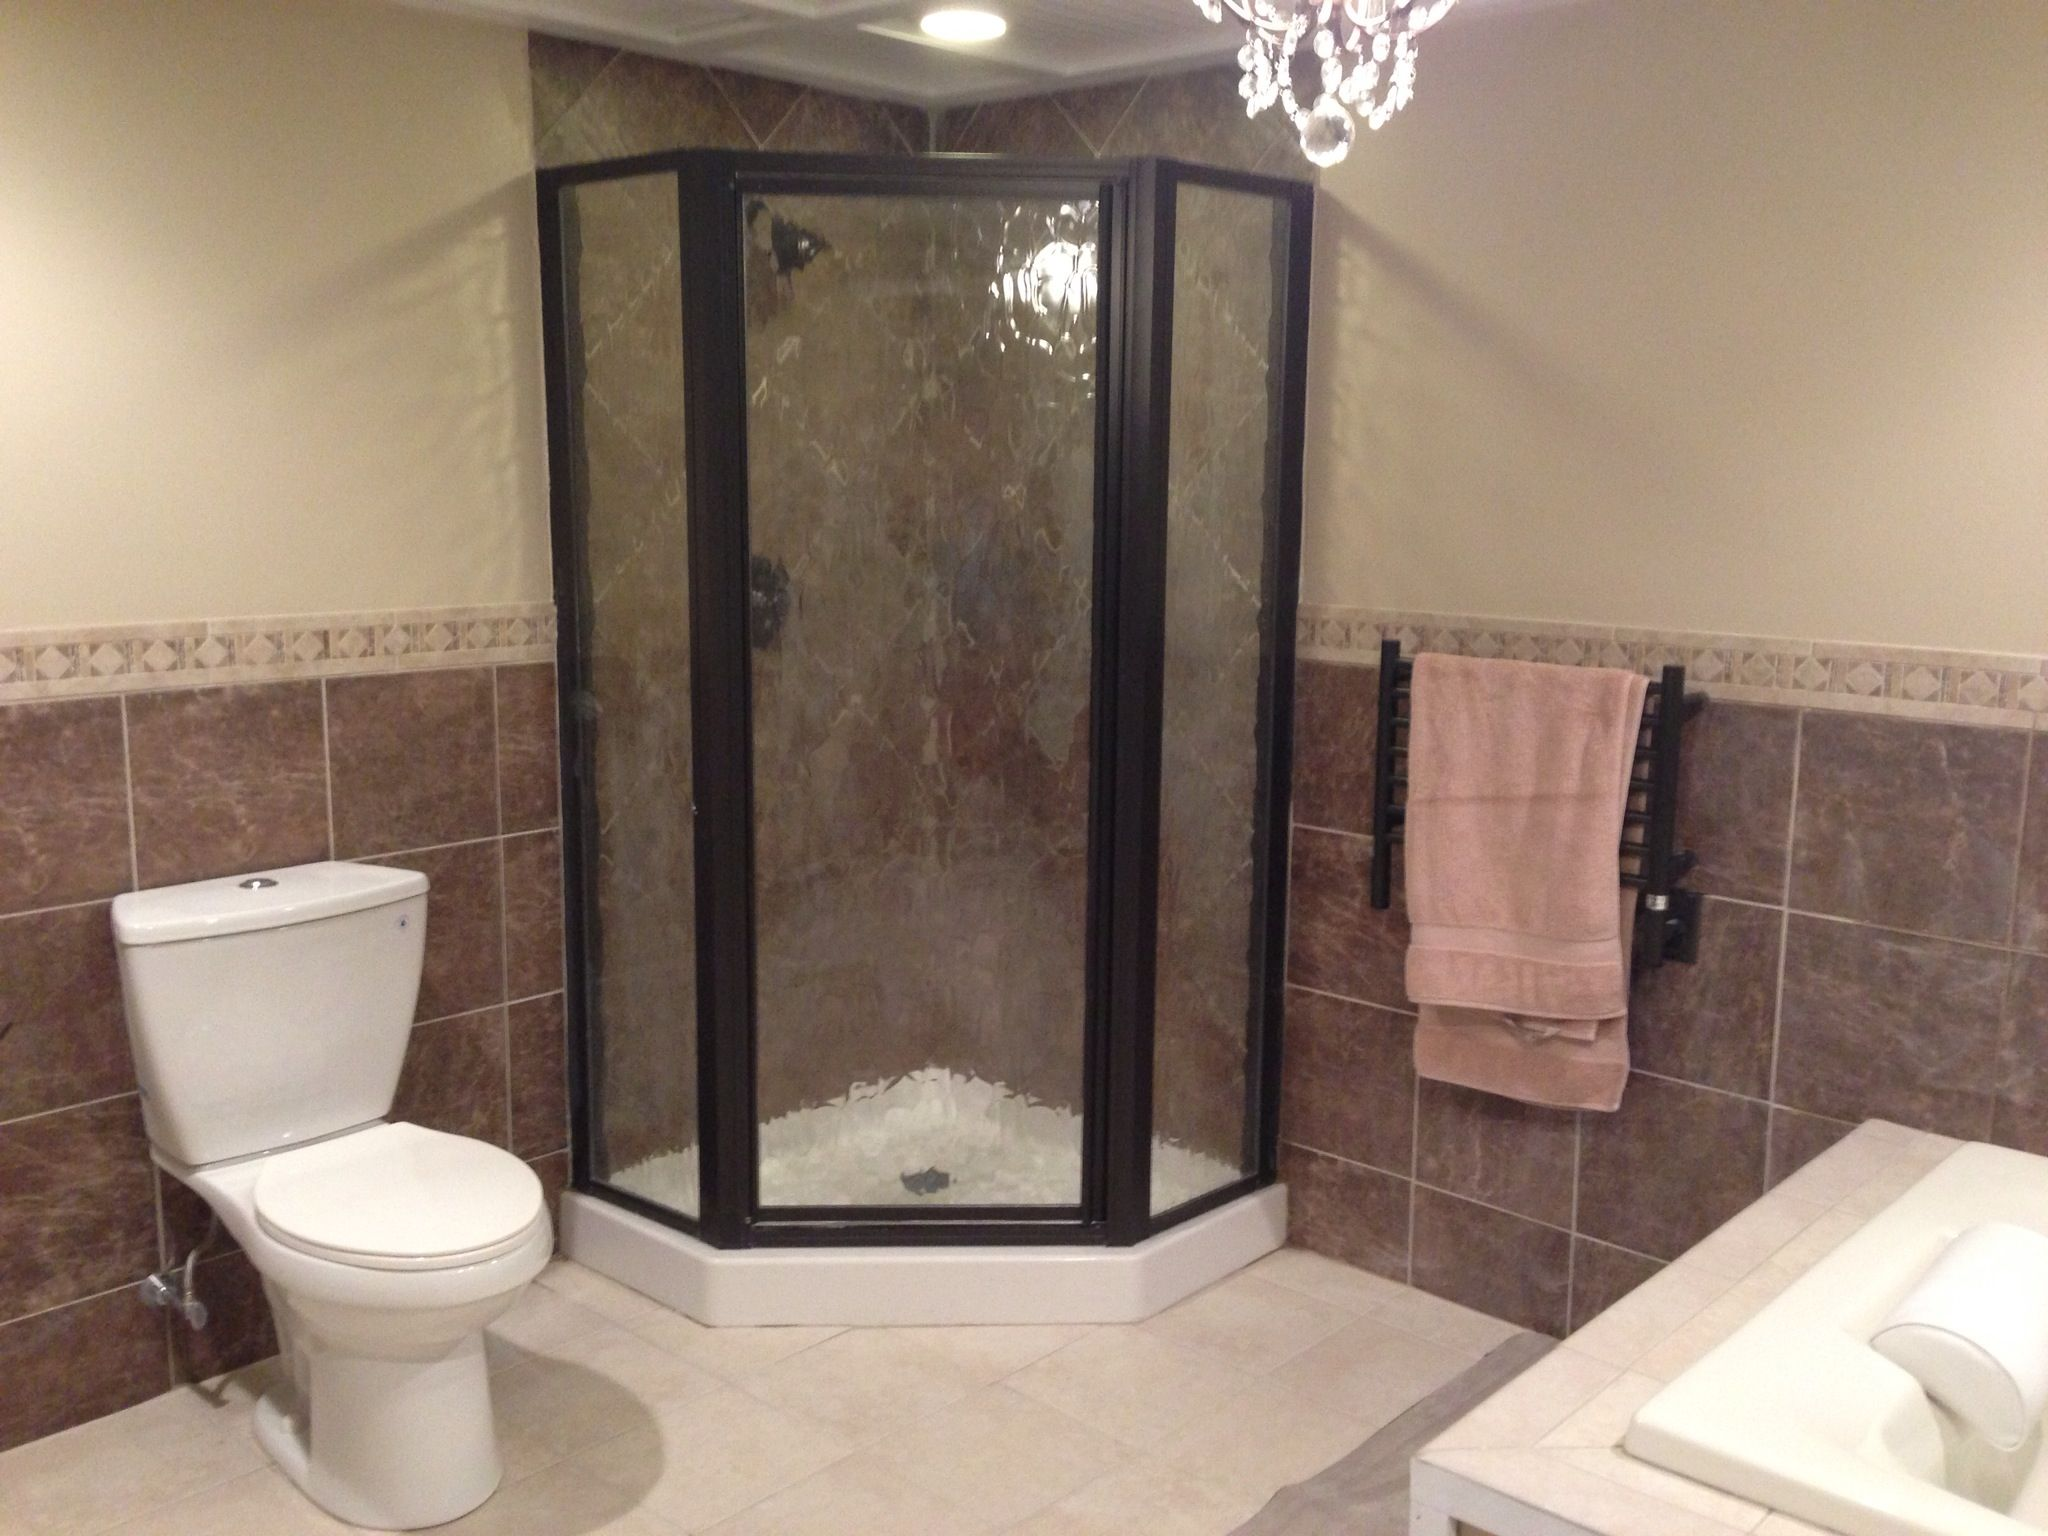 Stand up shower bathroom | Decorating | Pinterest | Shower bathroom ...